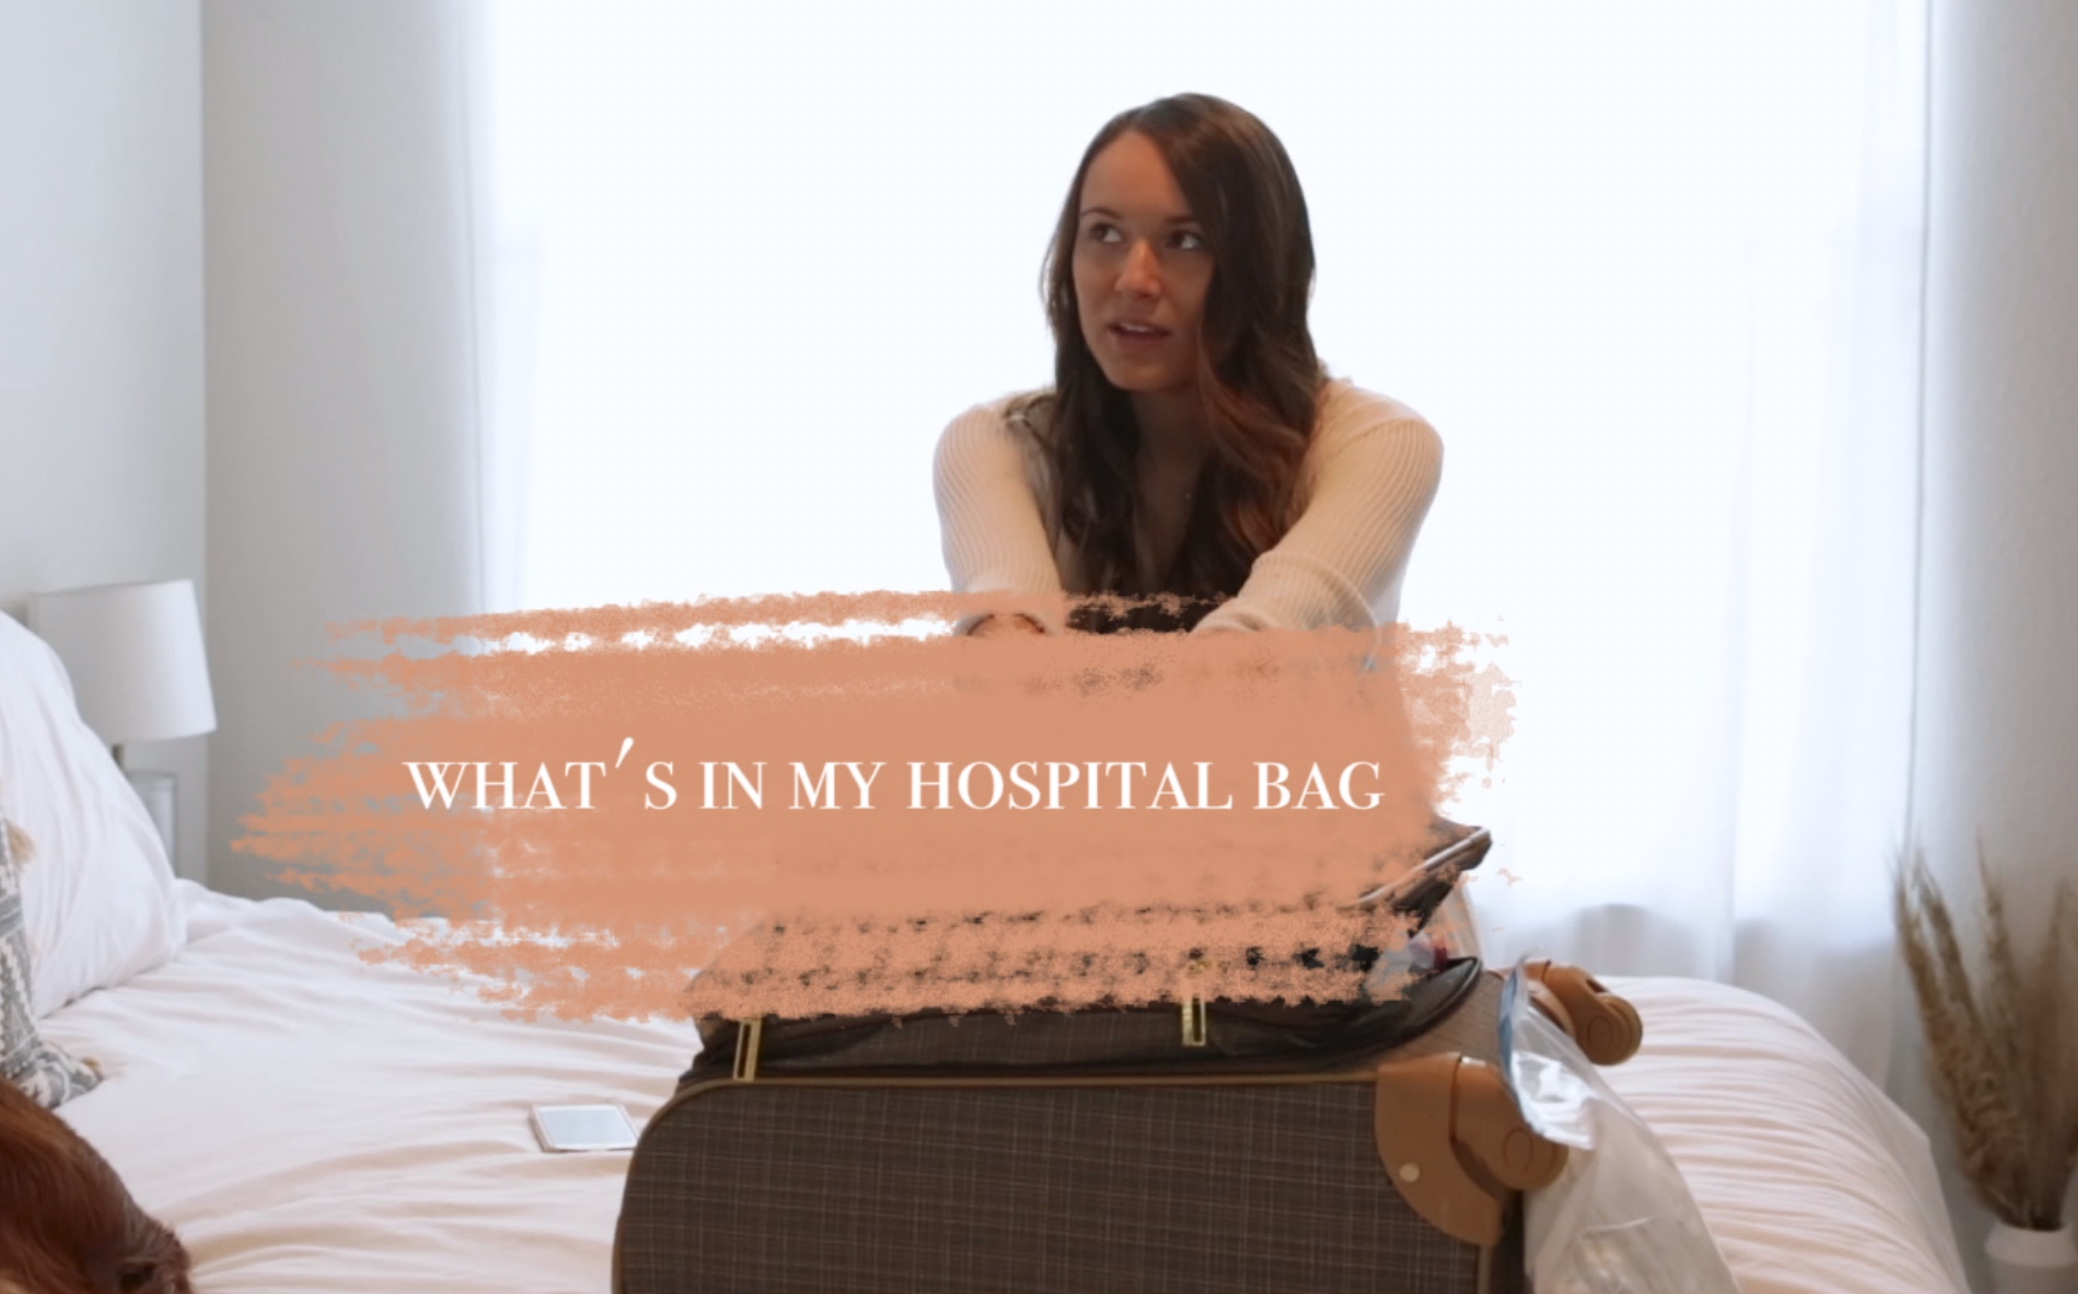 WHAT'S IN MY HOSPITAL BAG -